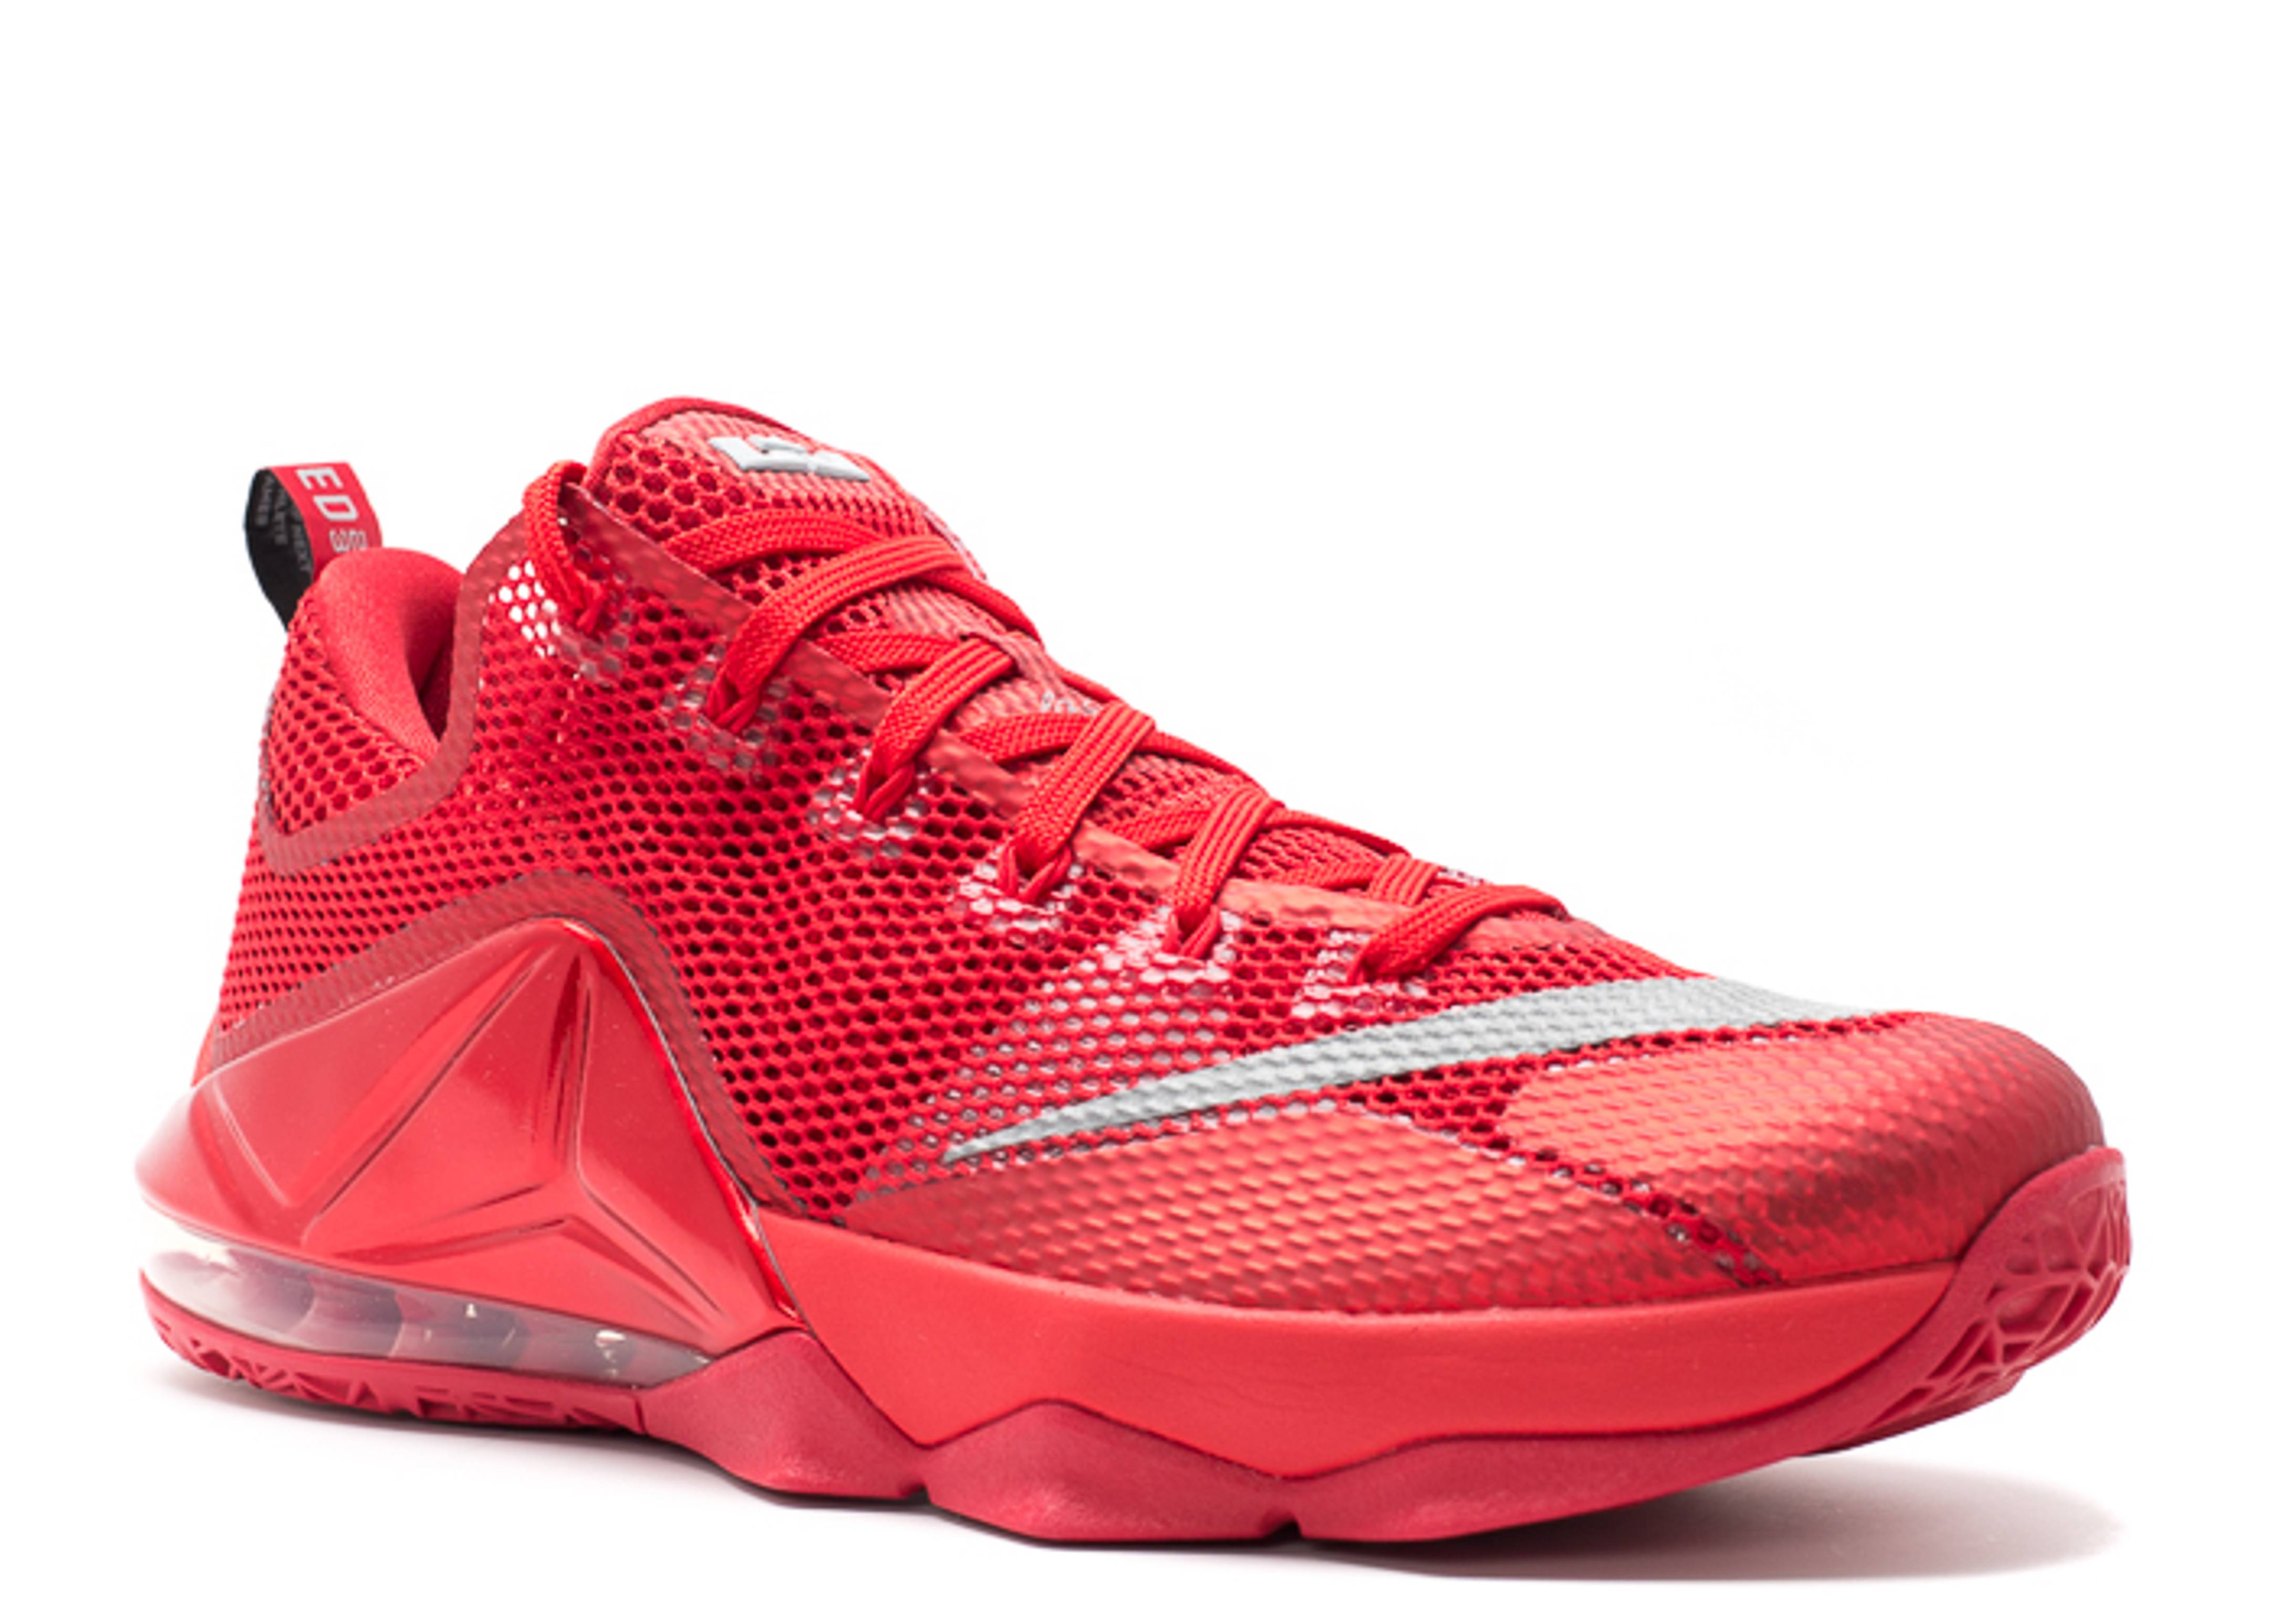 half off eaebc 59921 ... where to buy lebron 12 low nike 724557 616 unvrsty rd rflct slvr gym rd  b